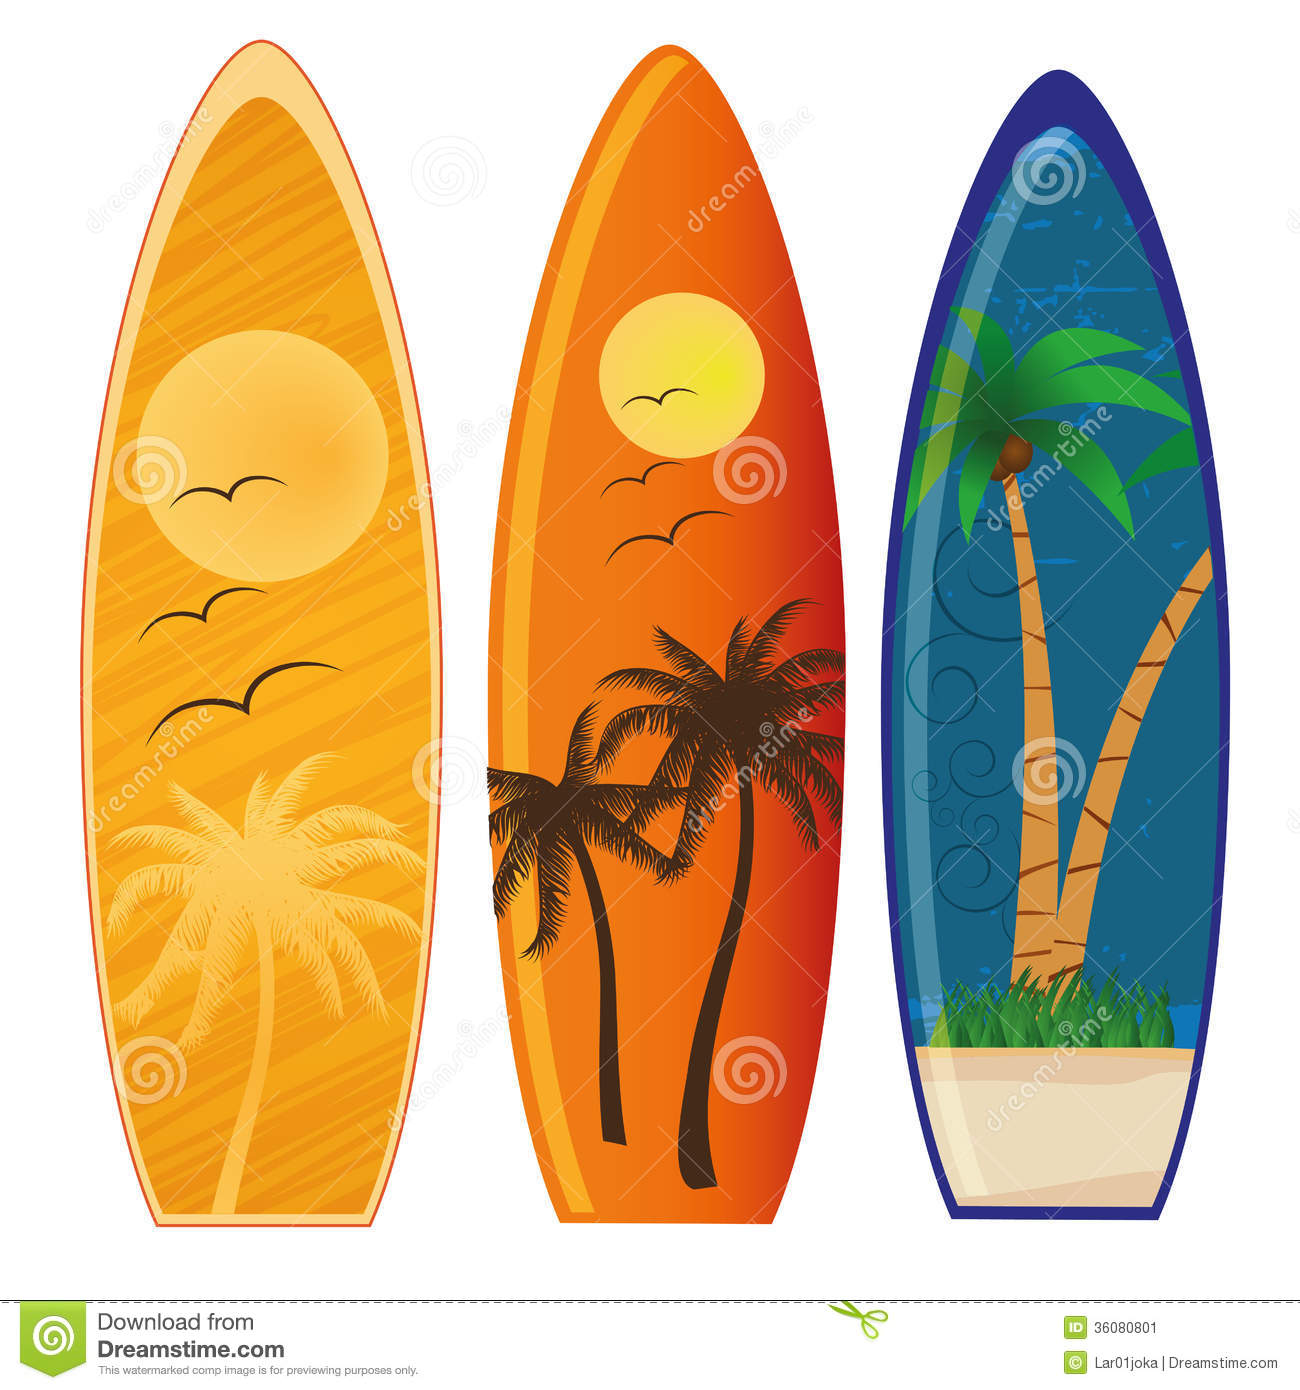 Surfboards Surfing Clipart.